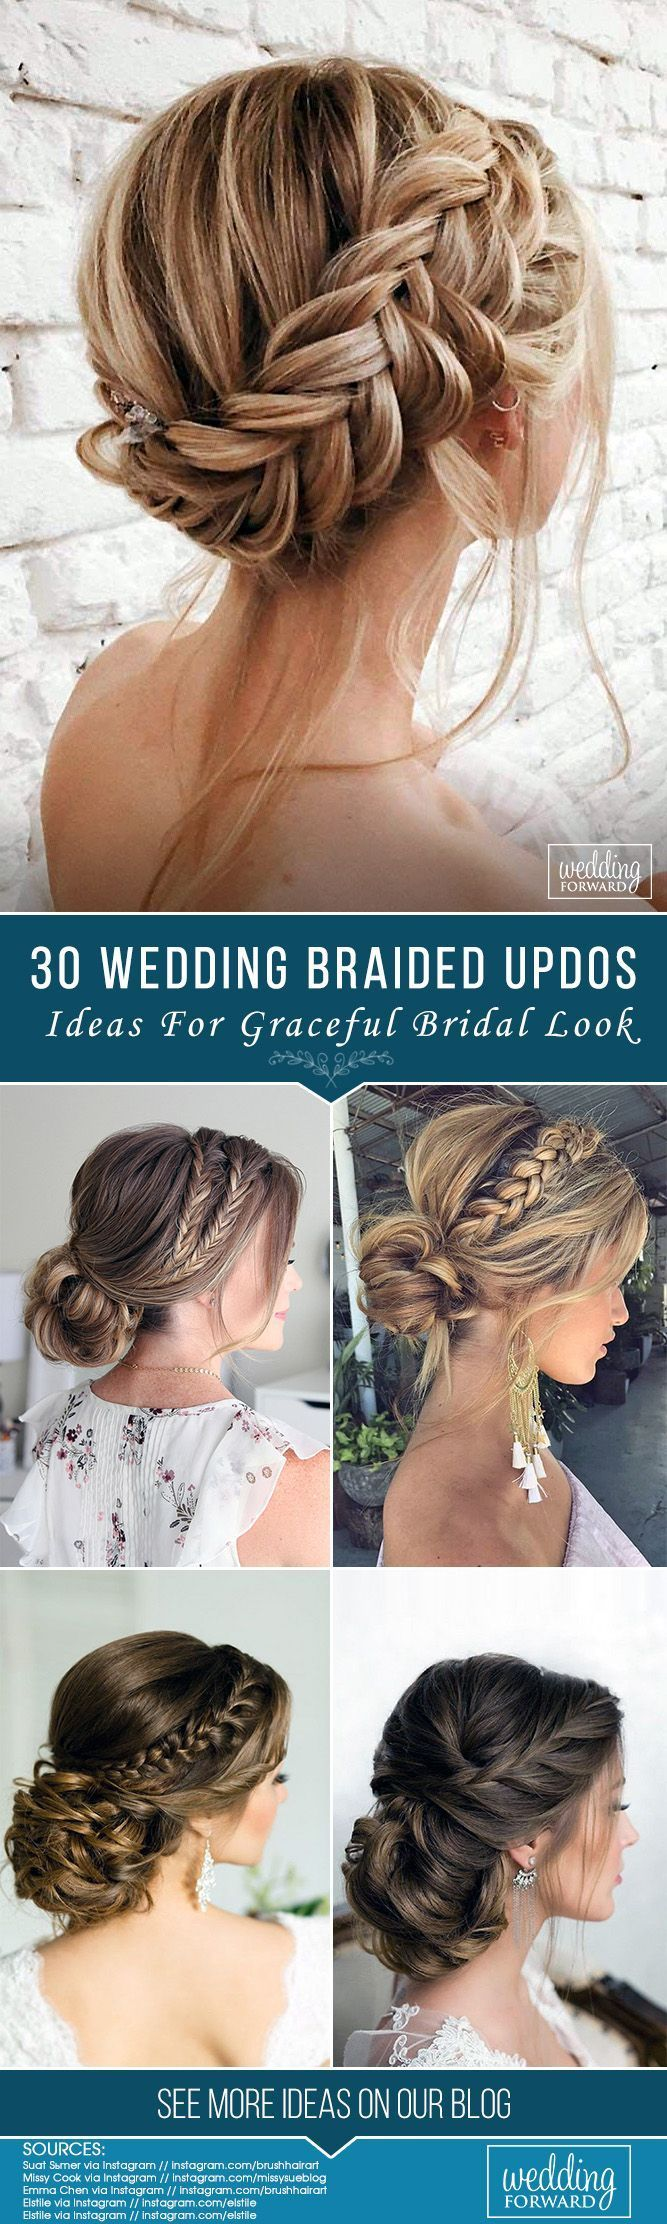 30 graceful wedding up-dos with braids